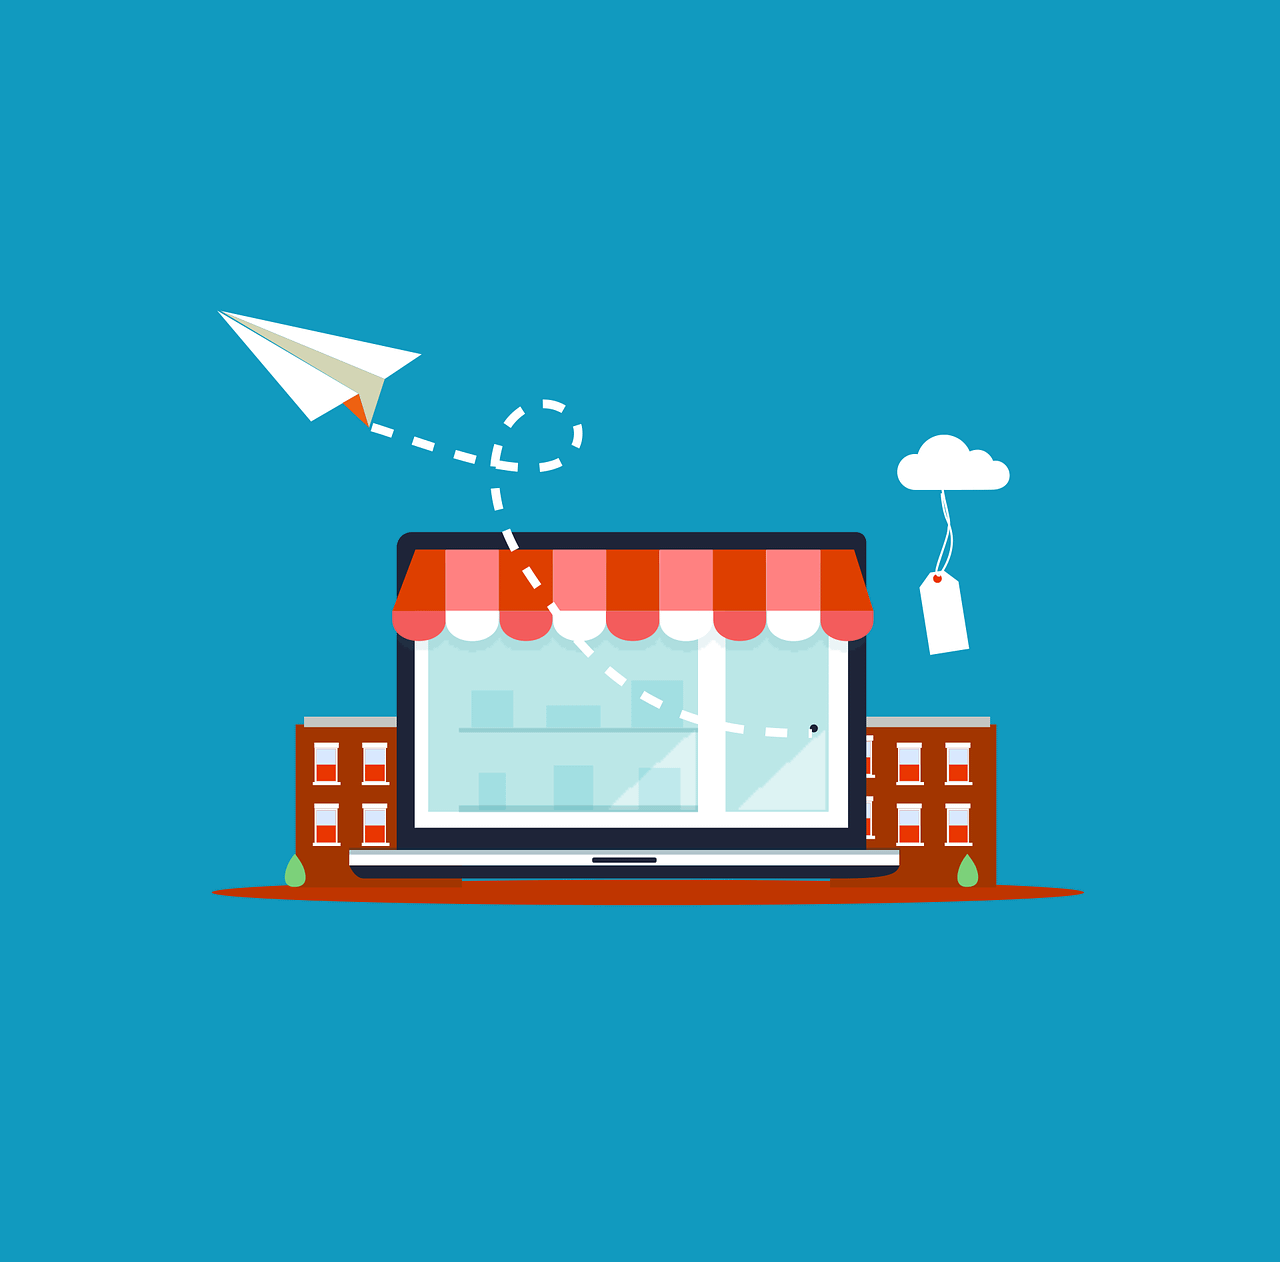 vector sketch of office with paper airplane flying out and price tag hanging from a cloud, representing marketing concepts